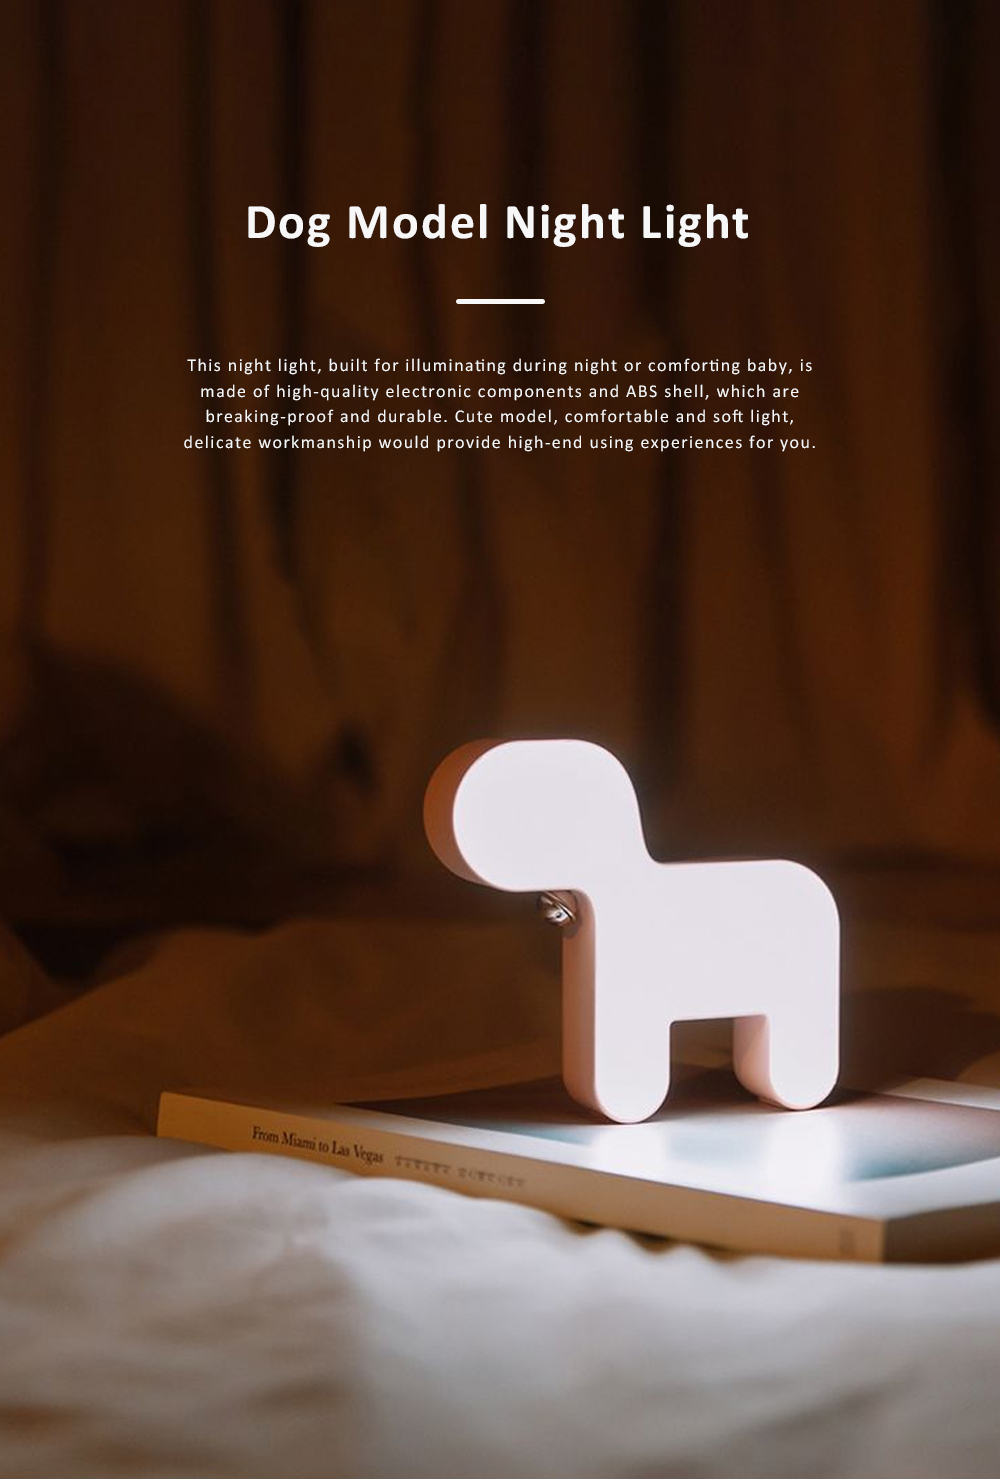 Cute Delicate Dog Bedroom Bedside Night Light Large Capacity Energy-saving LED Baby Comfort Lamp 0